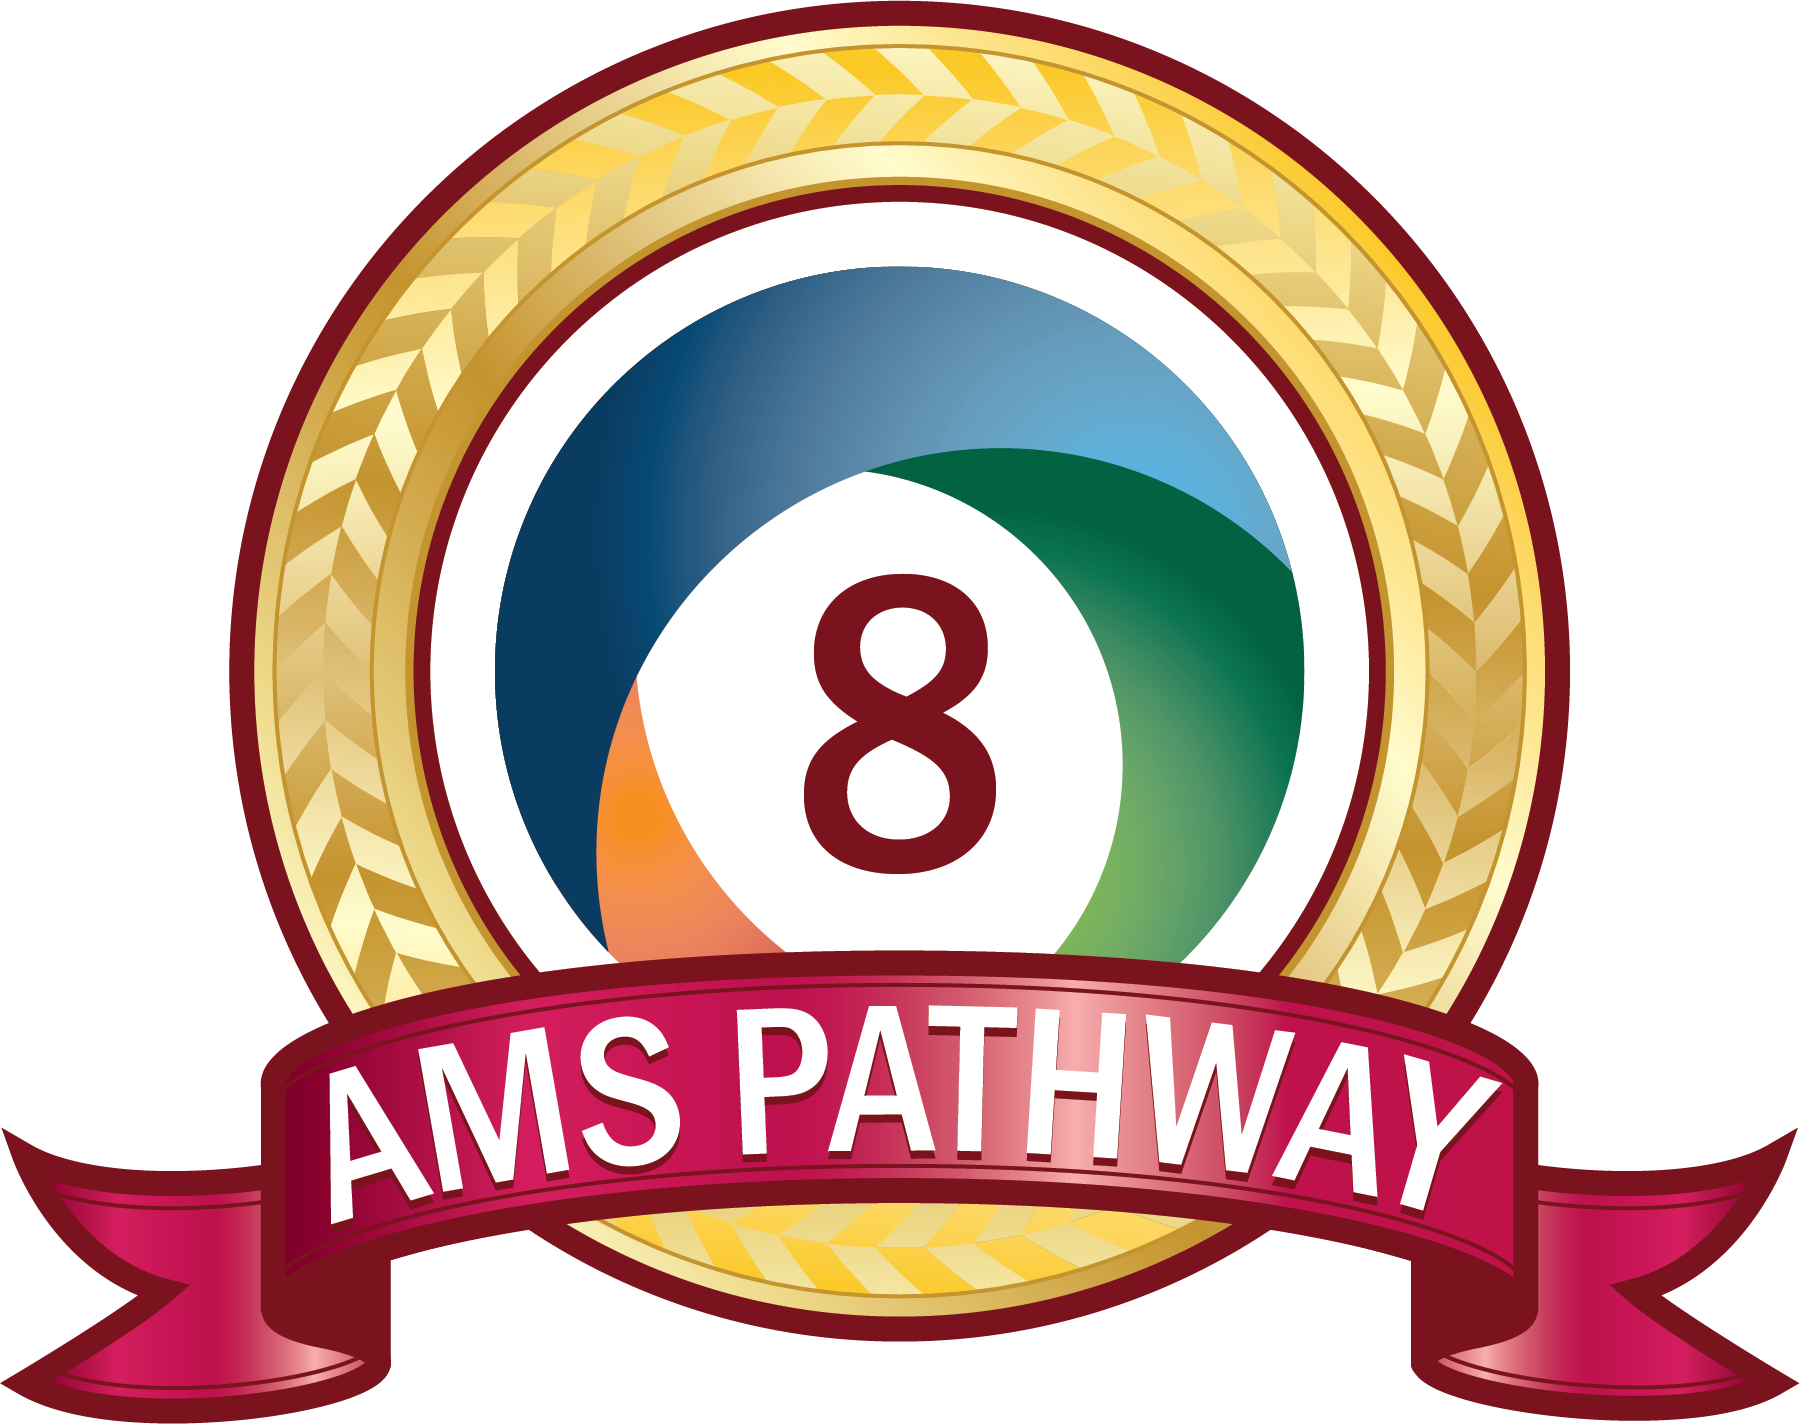 AMS Pathway Seal 8